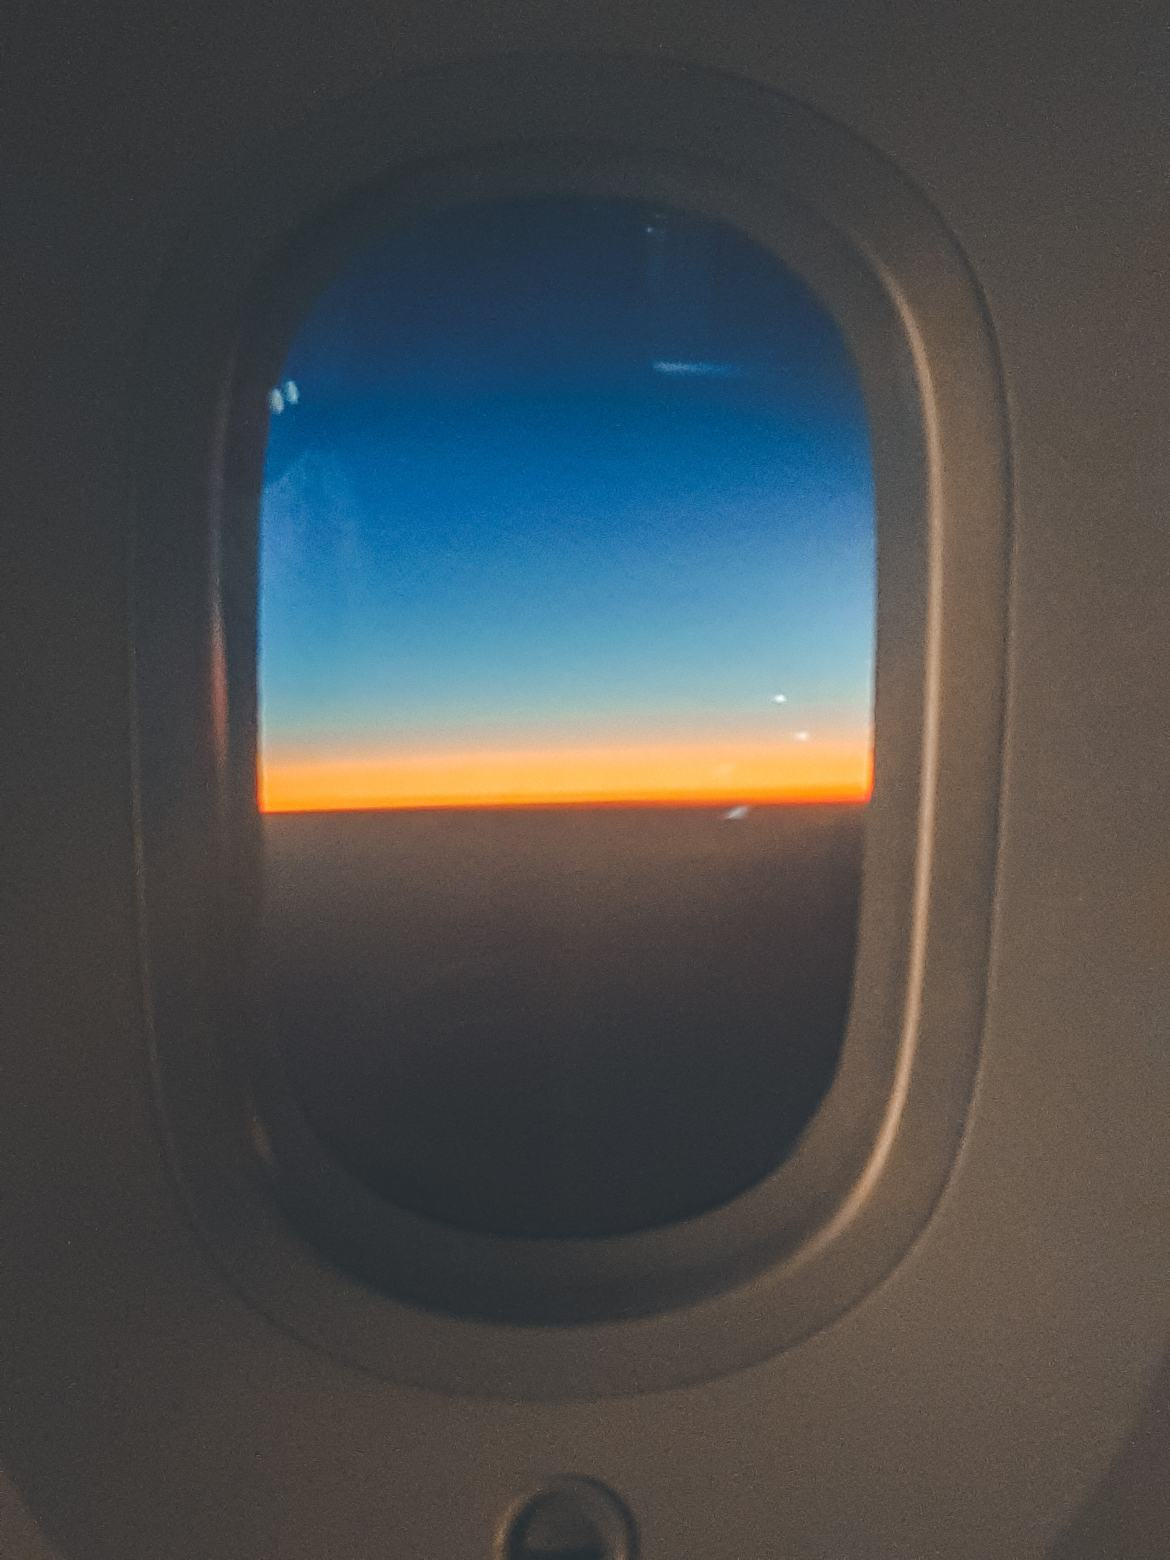 aeroplane-window-view, from-the-corner-table, travel-blog, personal-photographs, copyright-images, first-foreign-trip, first-overseas-trip, travel-memories